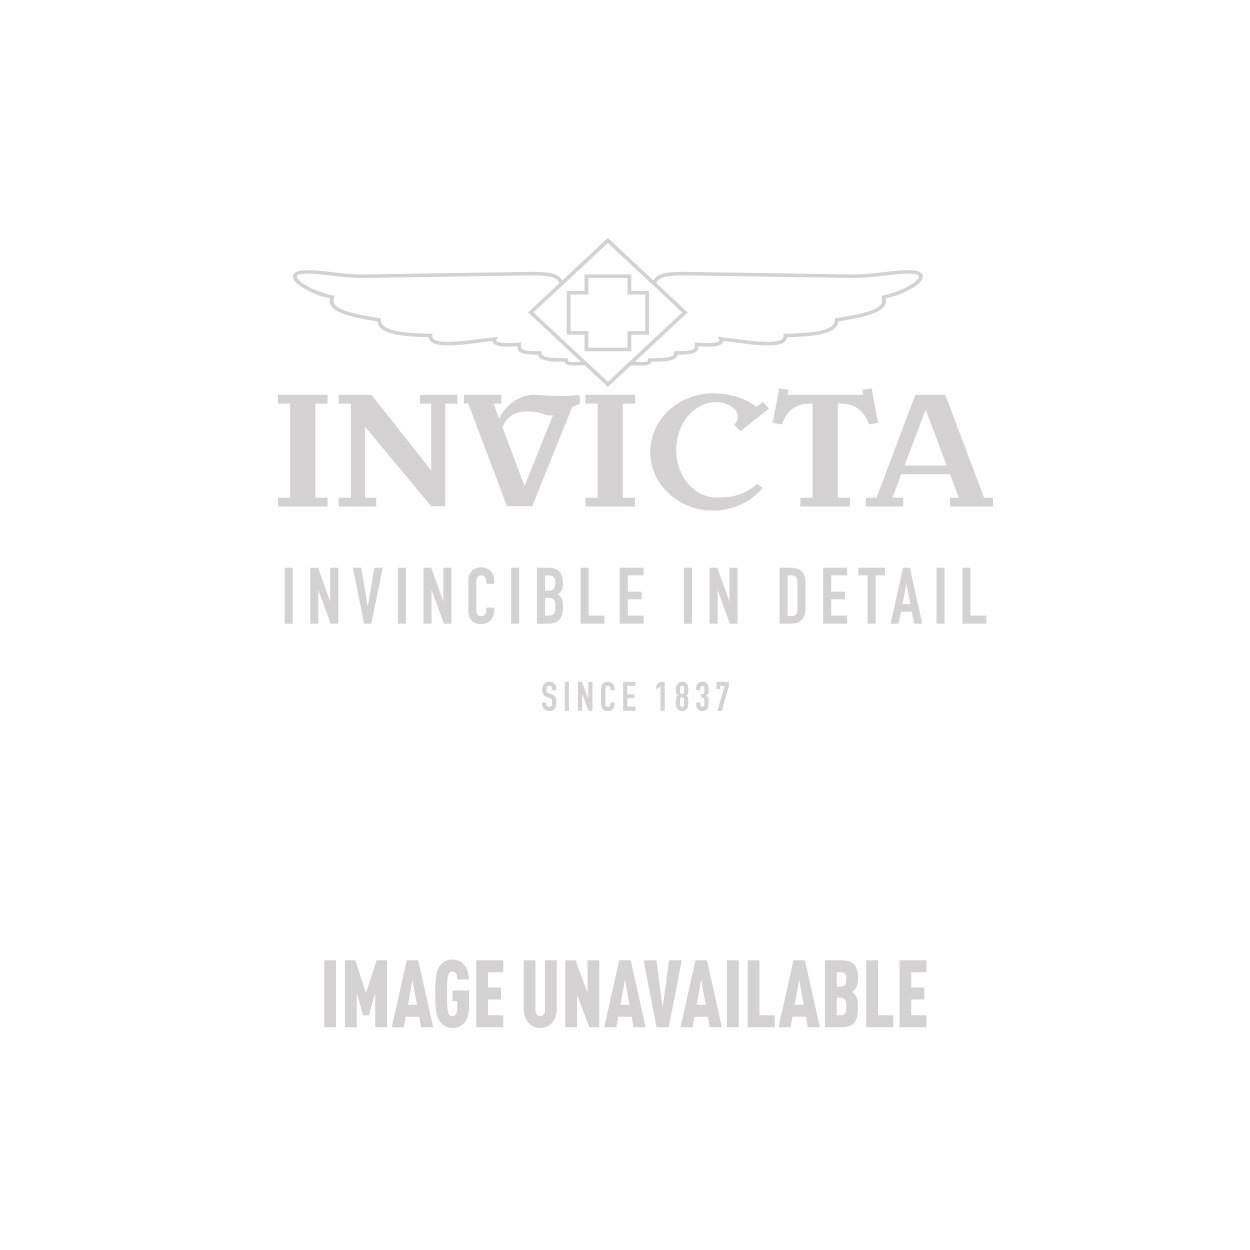 Invicta Subaqua Swiss Made Quartz Watch - Rose Gold case with Rose Gold tone Stainless Steel band - Model 17224